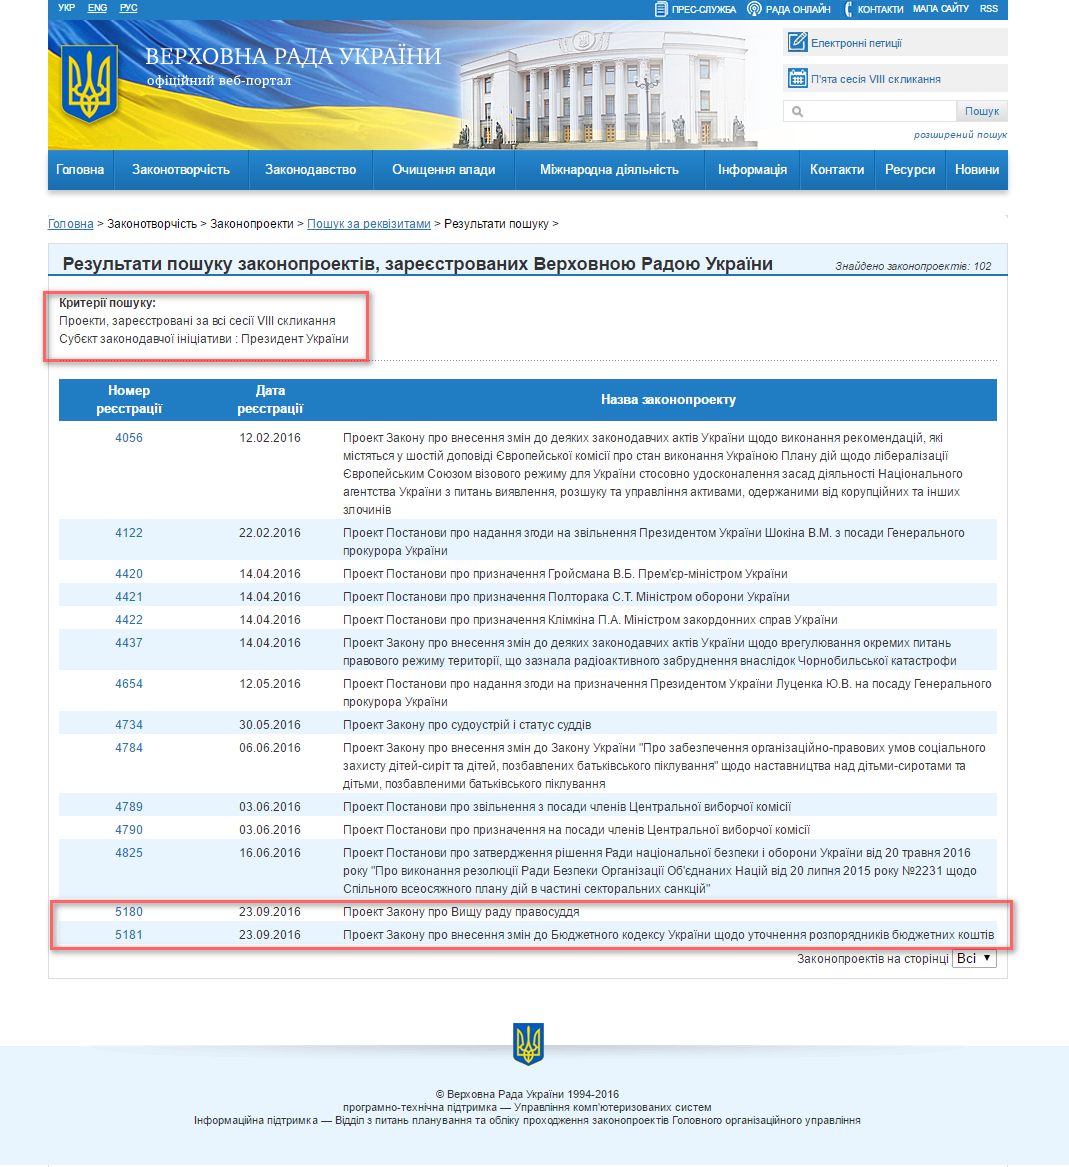 http://w1.c1.rada.gov.ua/pls/zweb2/webproc2_5_1_J?ses=10009&num_s=2&num=&date1=&date2=&name_zp=&av_nd=&prof_kom=0&is_gol_kom=0&dep_fr=0&stan_zp=0&date3=&is_zakon=0&n_act=&gneu_decision_present=&sub_zak=1&type_doc=0&type_zp=0&vid_zp=0&edition_zp=0&is_urgent=0&ur_rubr=0&sort=0&out_type=&id=&page=1